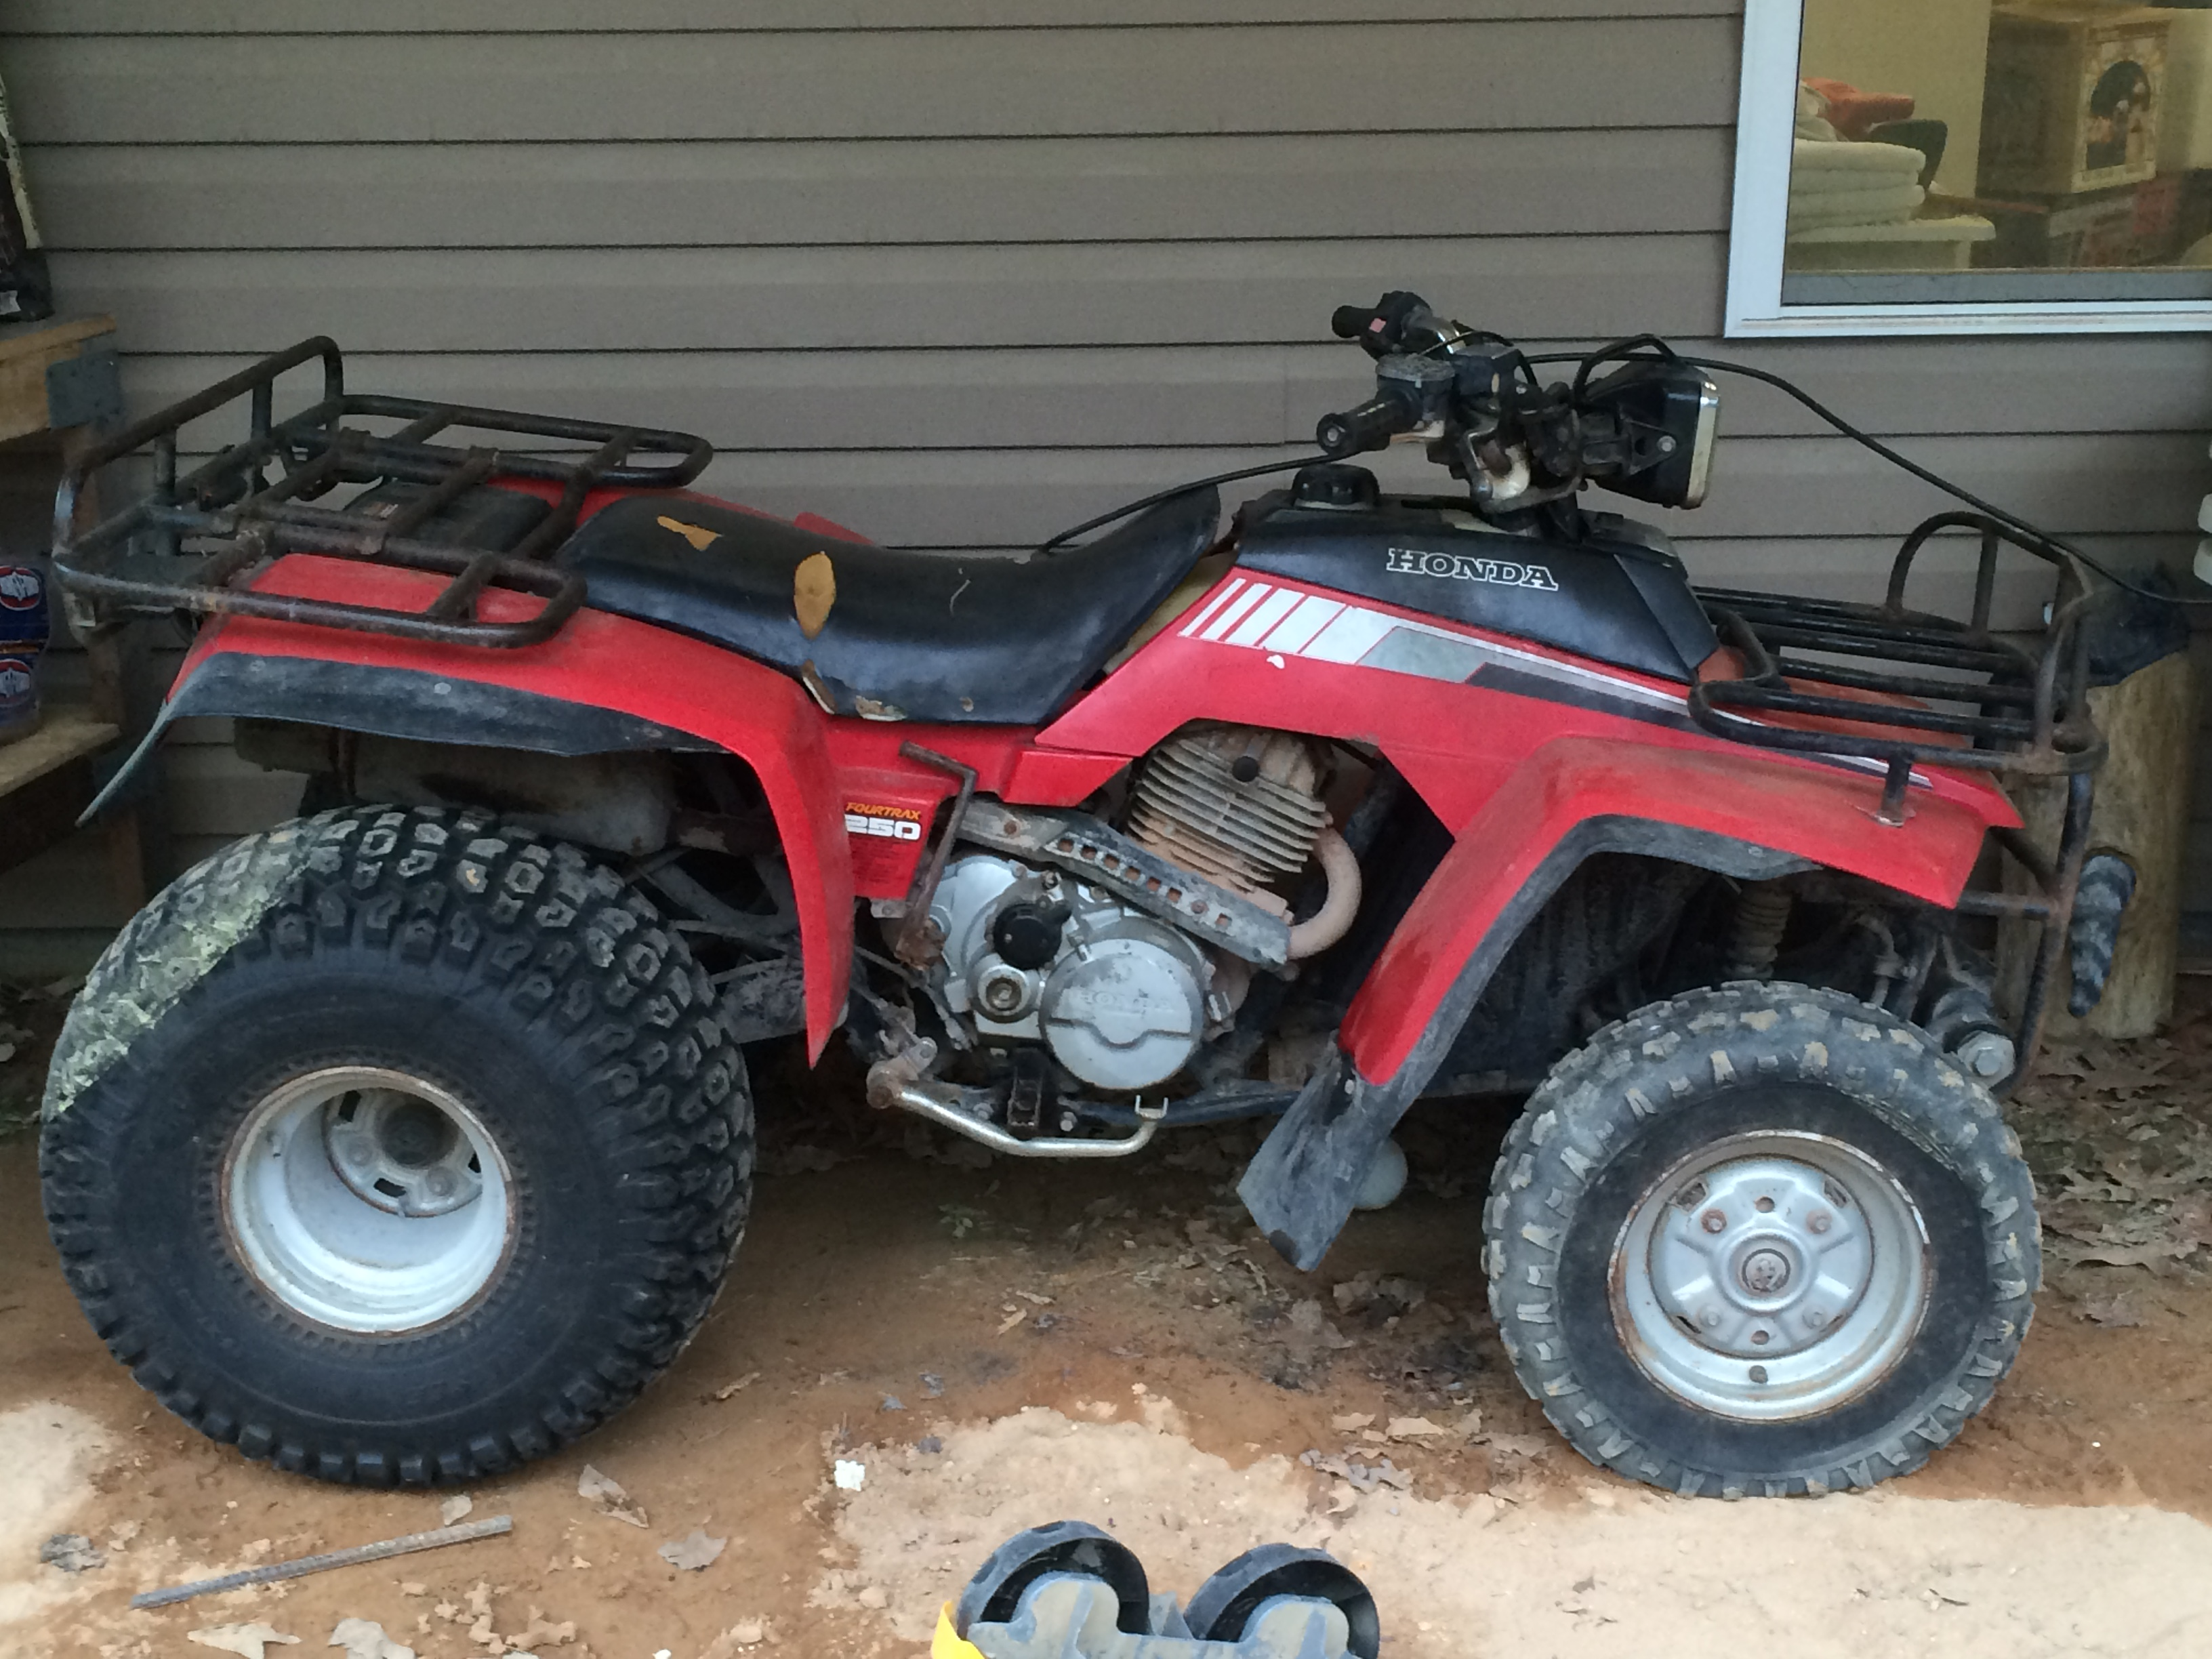 New To Me 1985 Trx250